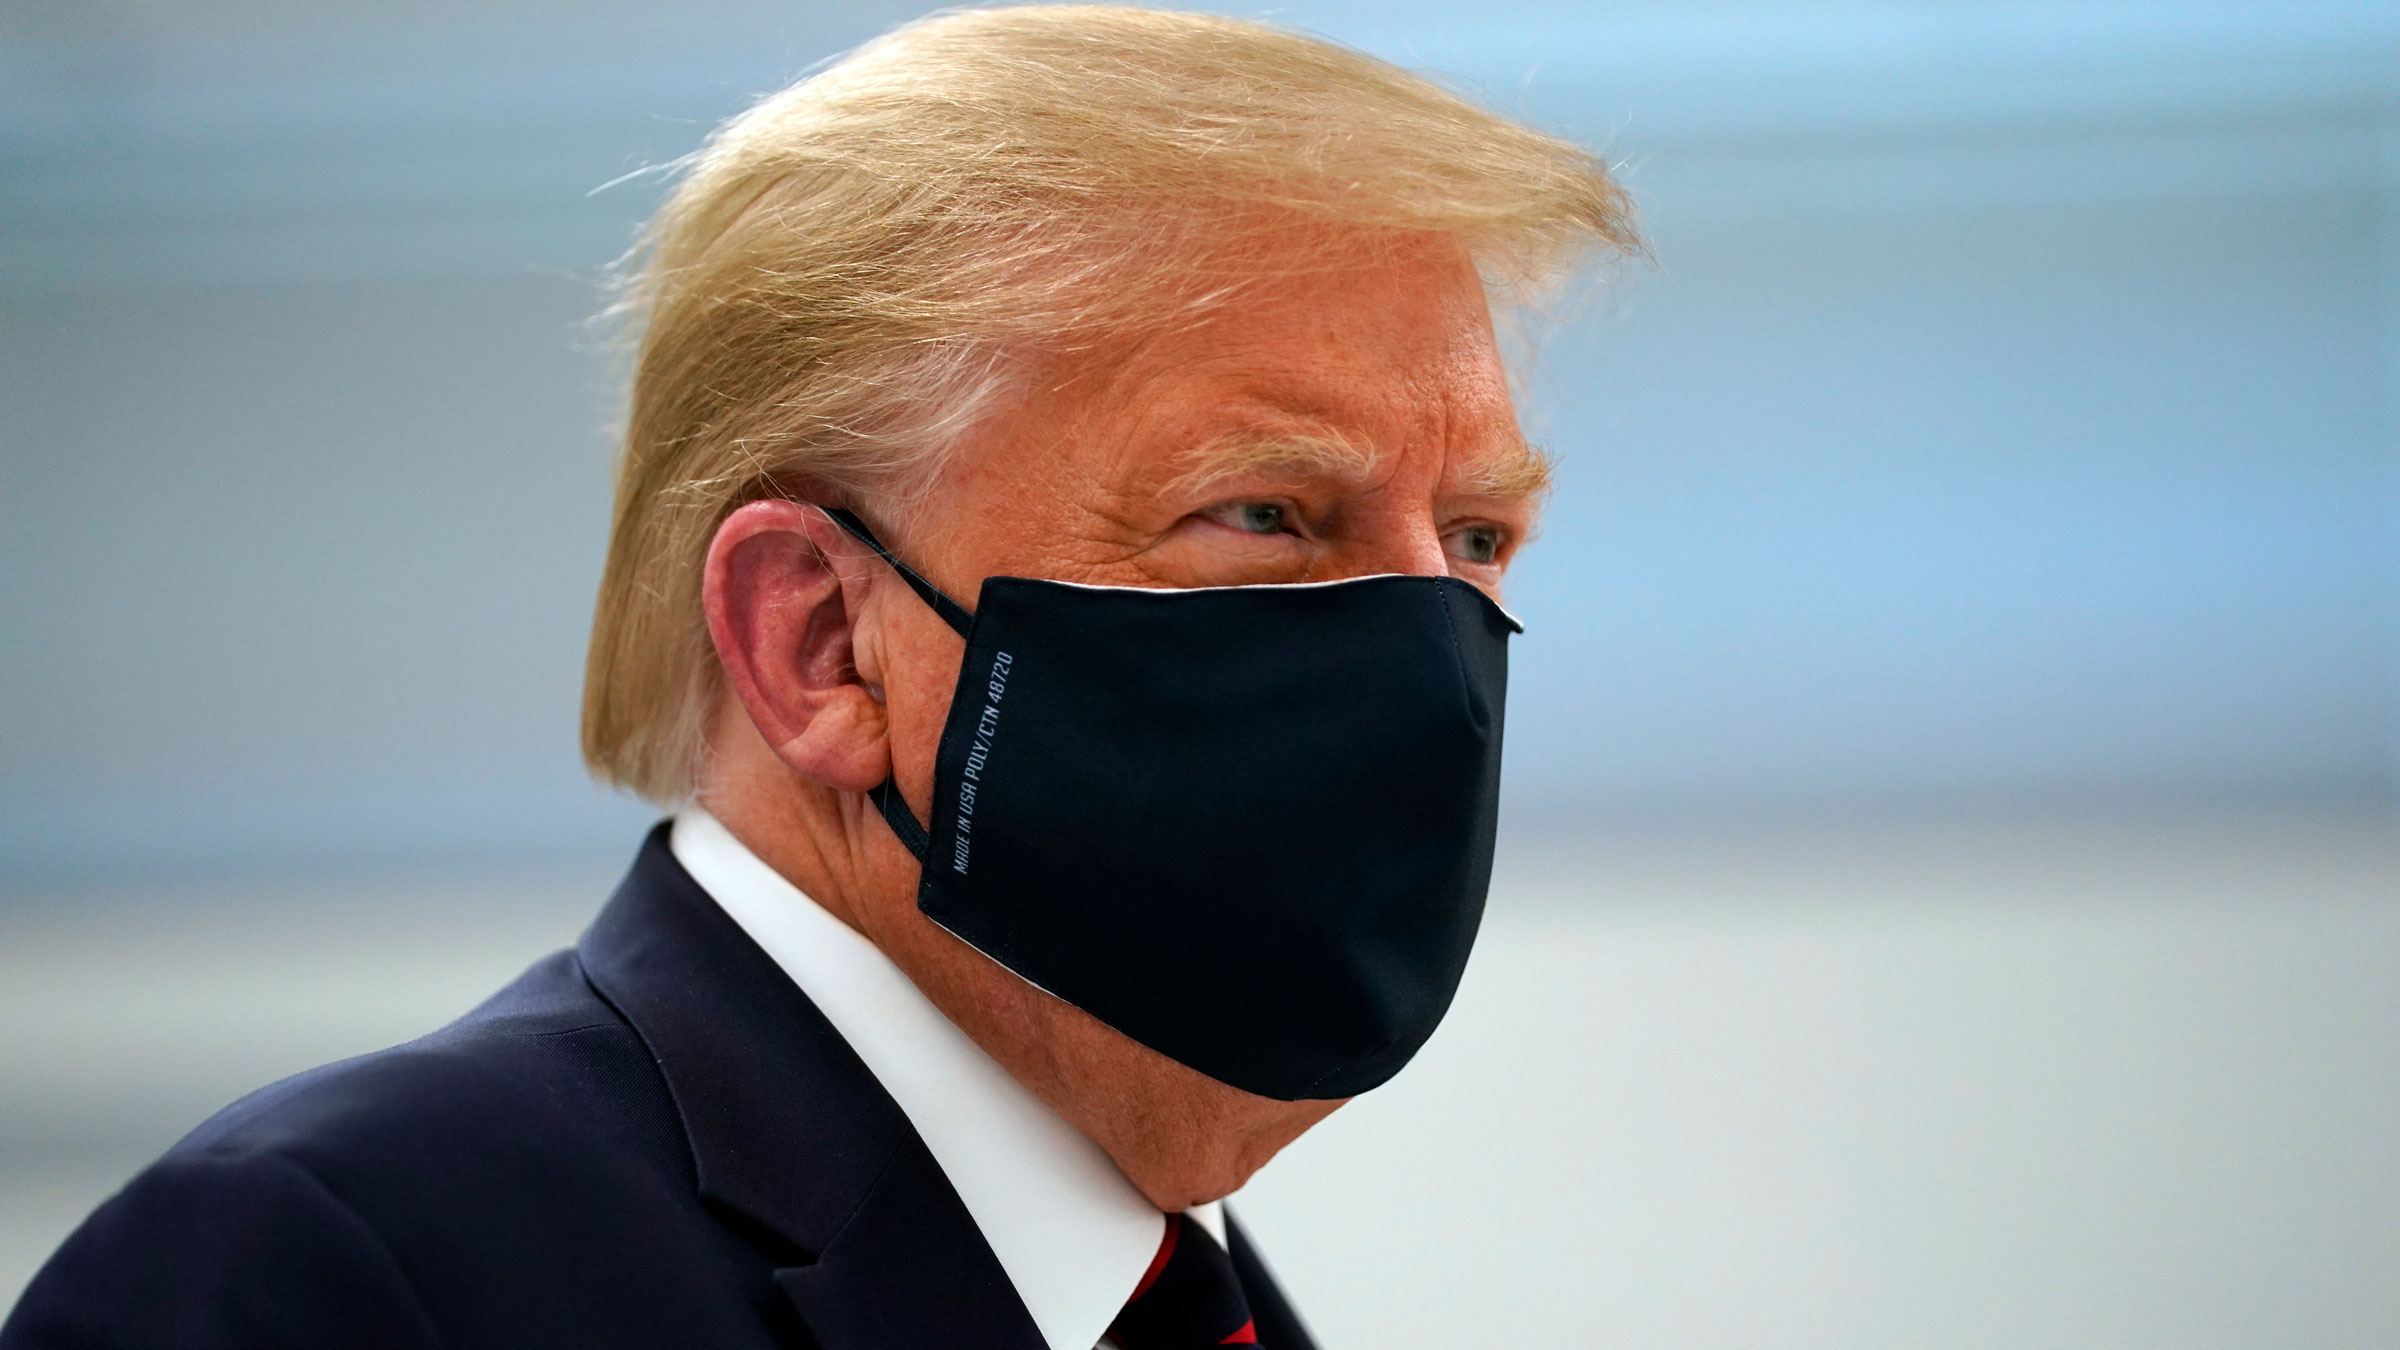 President Donald Trump wears a face mask Monday as he tours the Bioprocess Innovation Center in Morrisville, North Carolina.